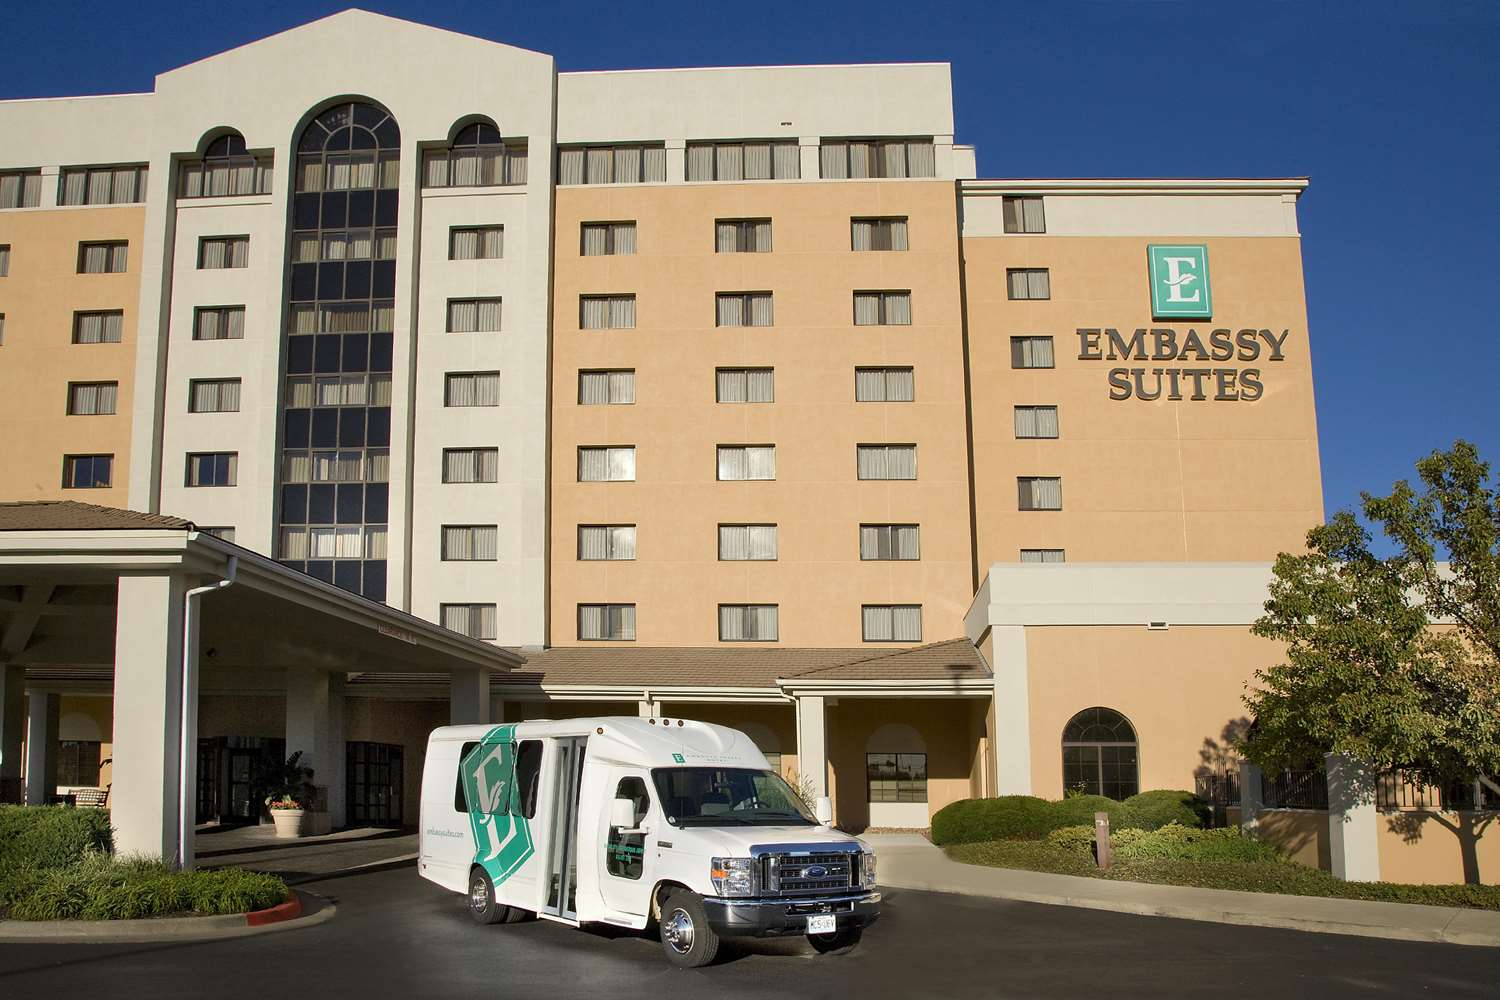 Embassy Suites by Hilton Kansas City International Airport